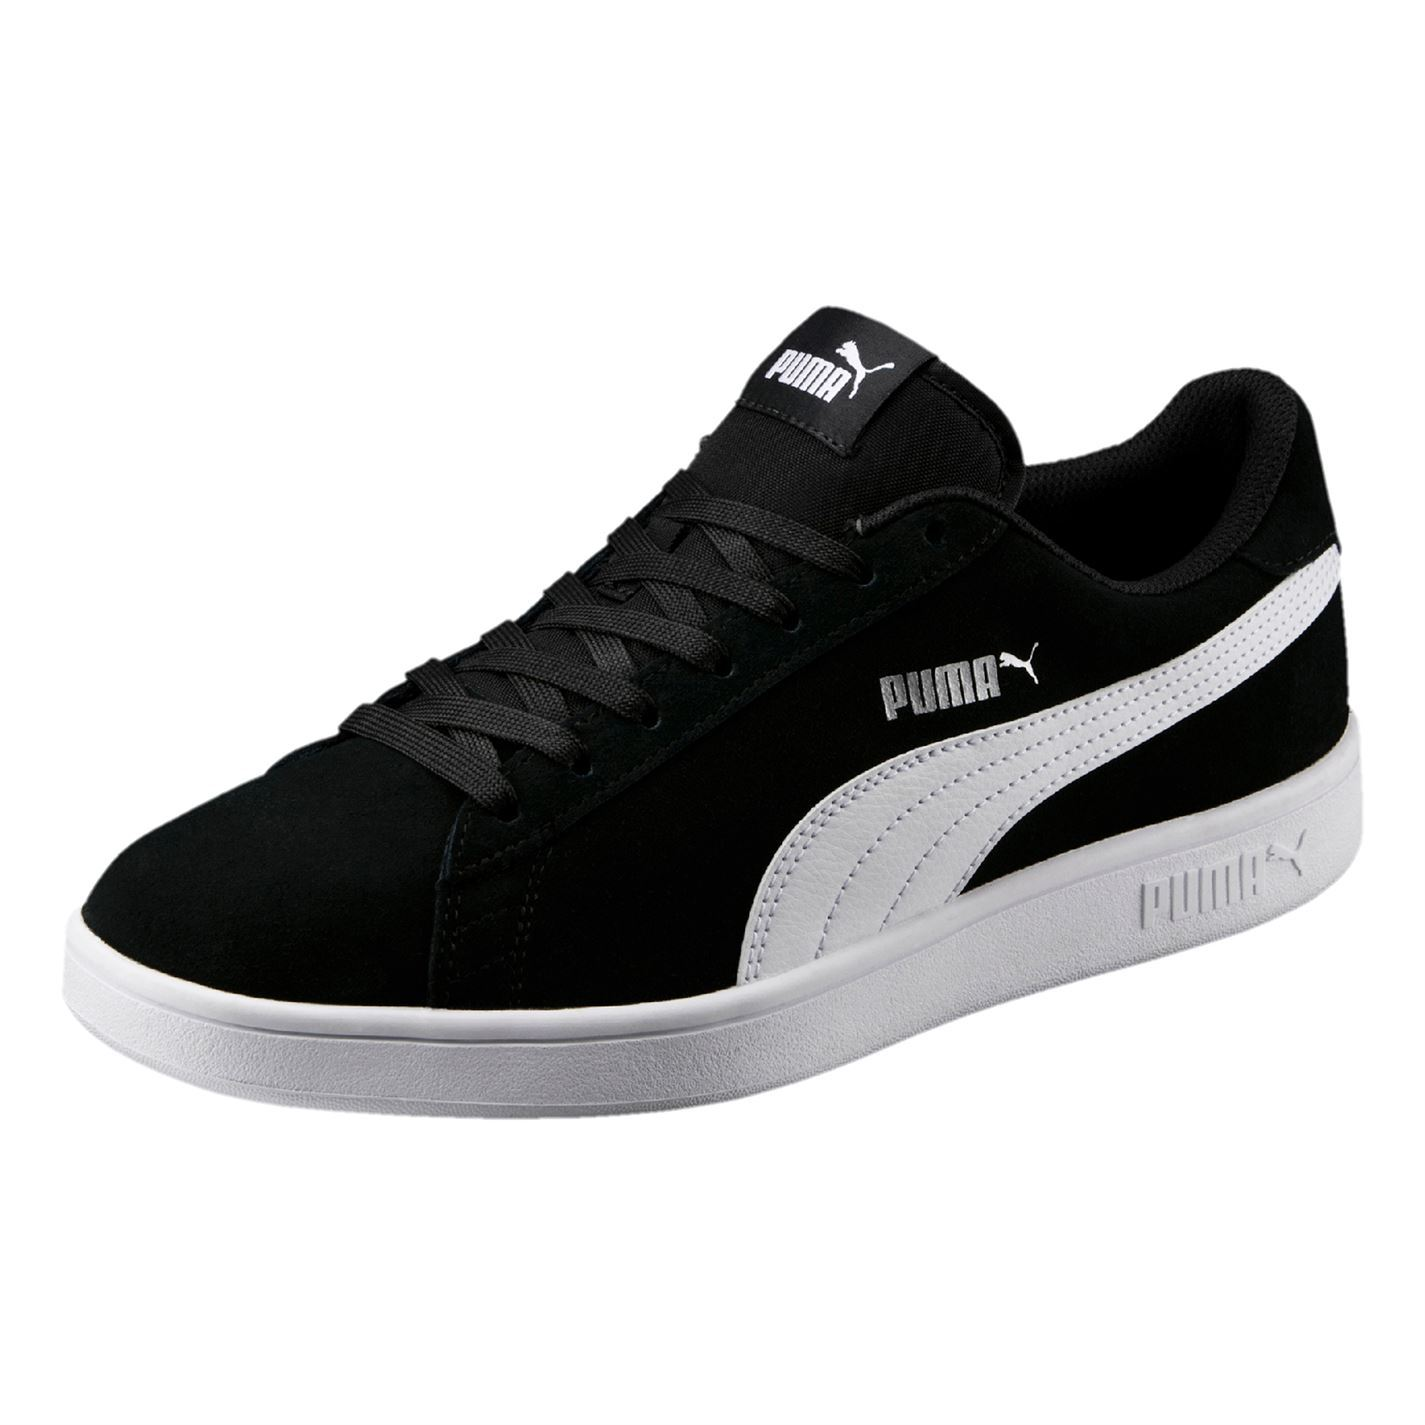 Puma-Smash-V2-Suede-Trainers-Mens-Shoes-Sneakers-Athleisure-Footwear thumbnail 5